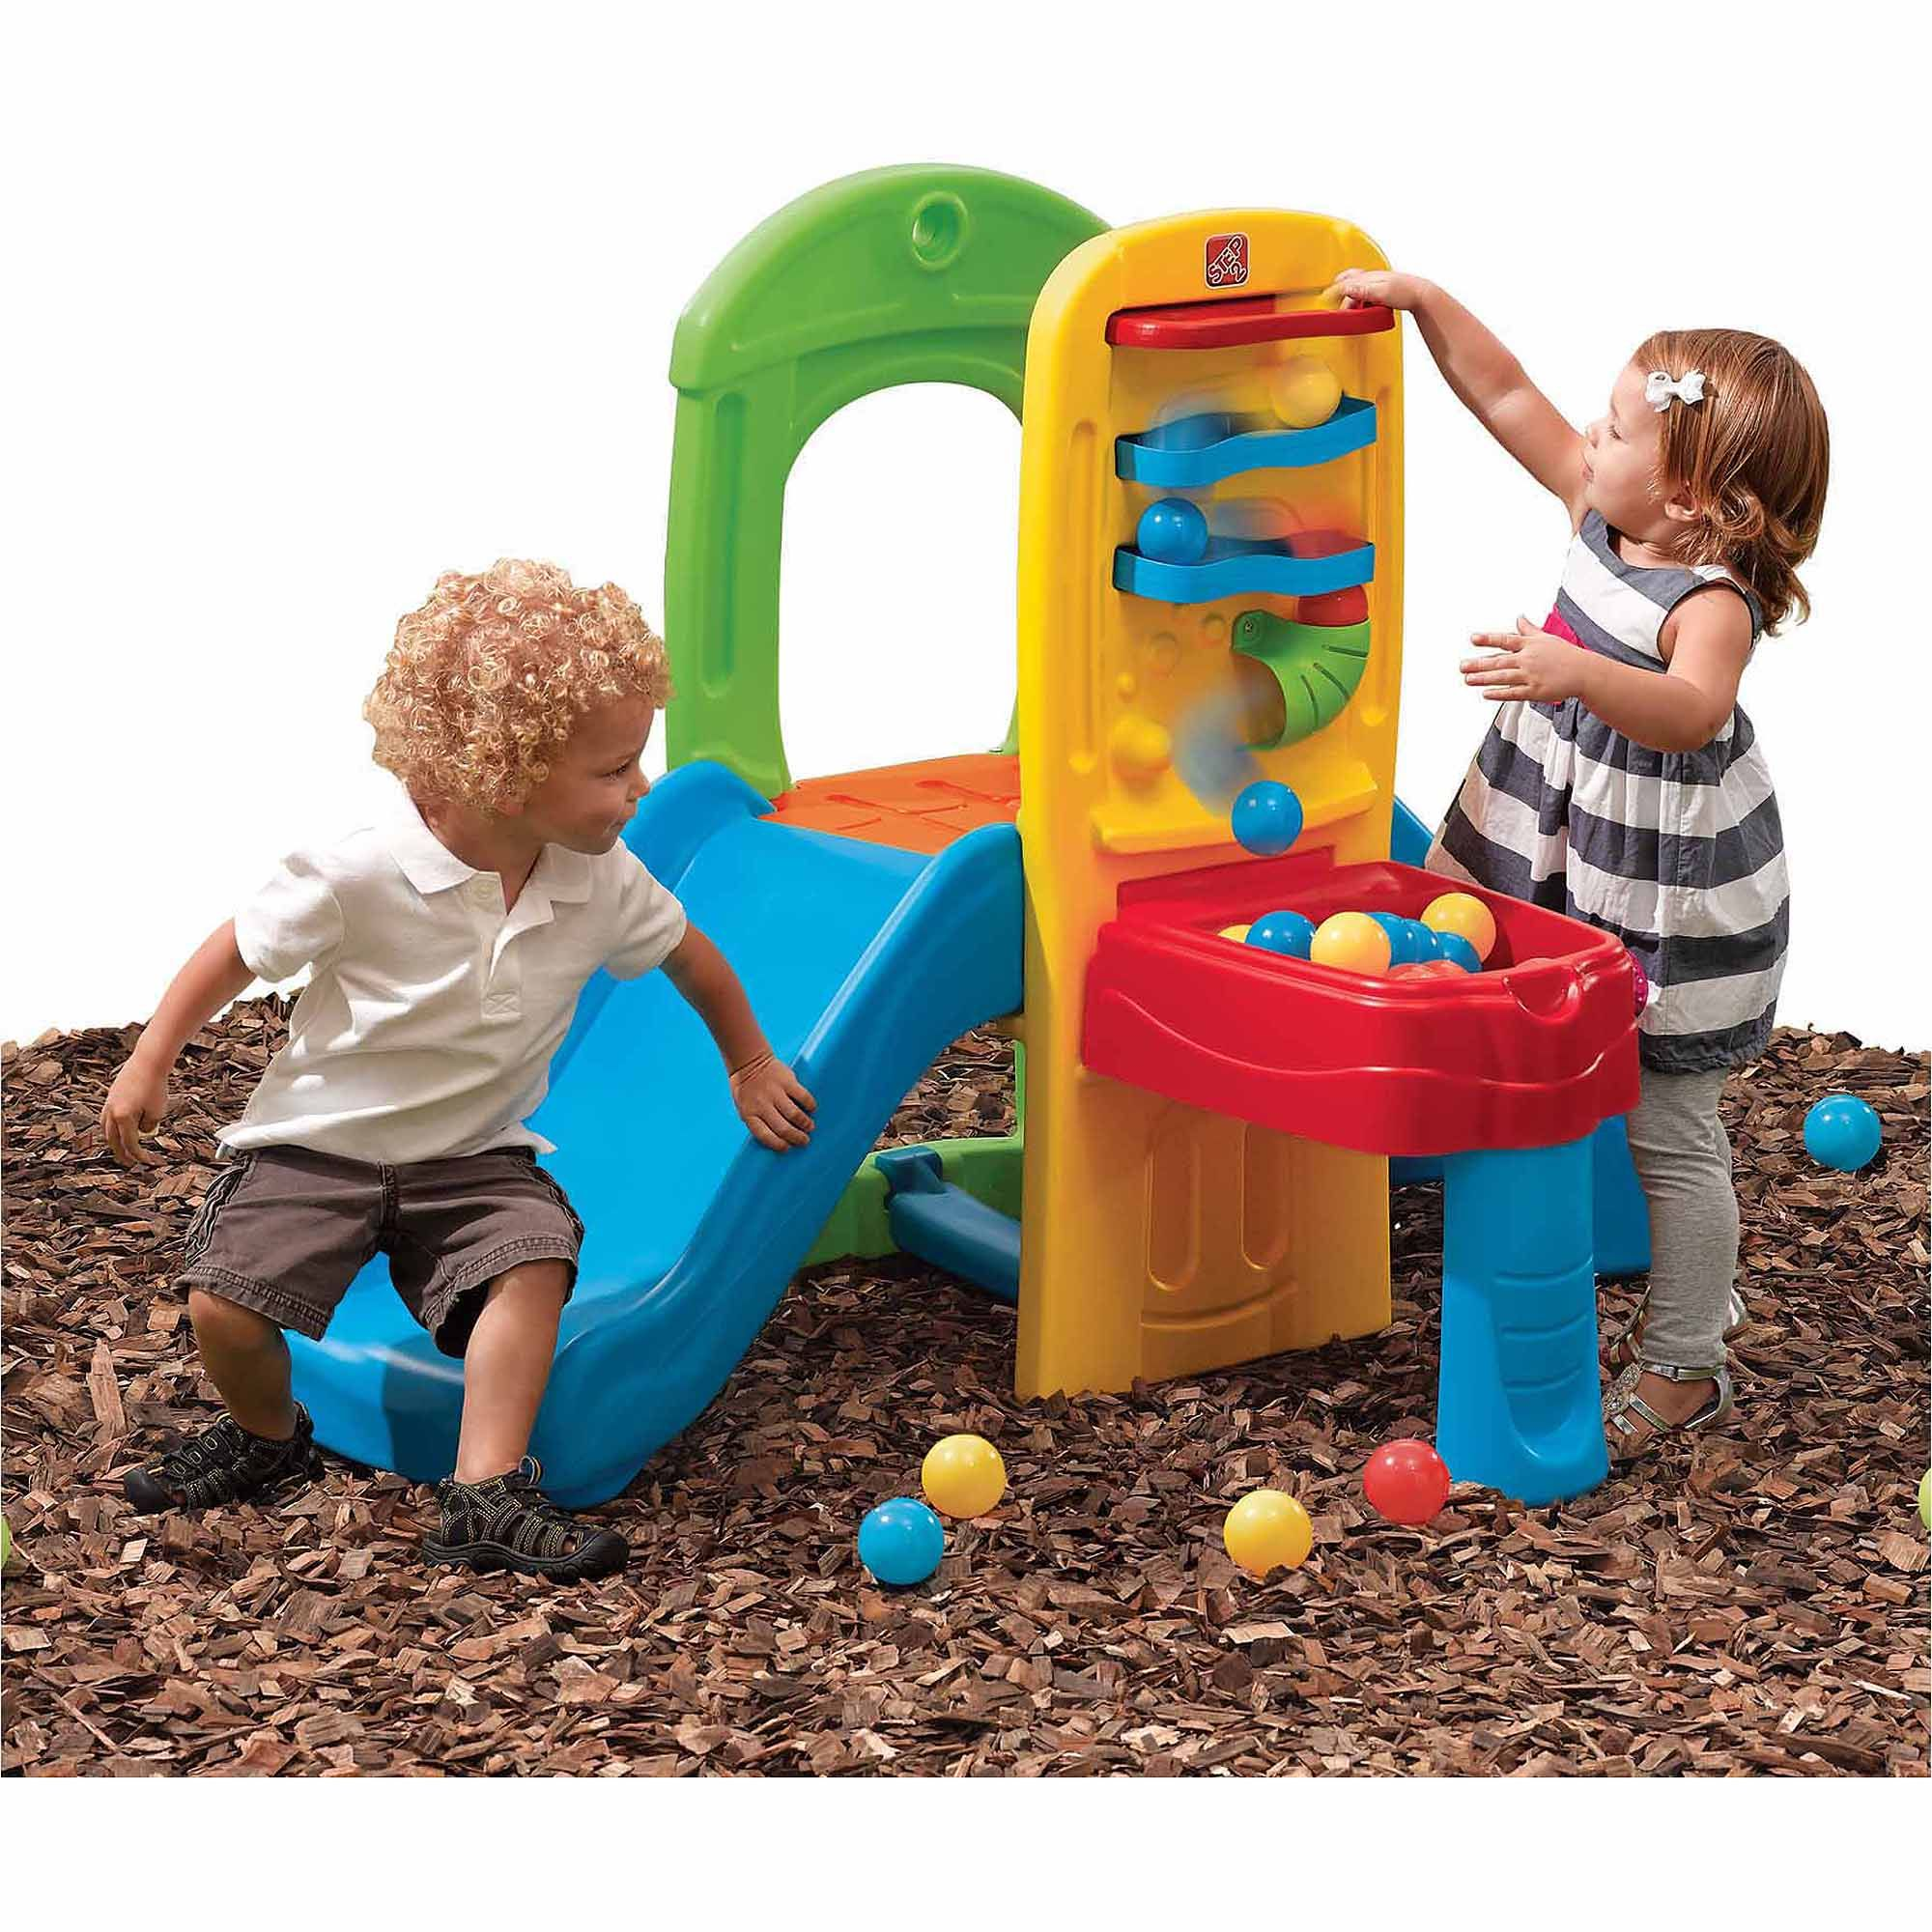 The Plastic PlaygroundEquipment is made using HDPE or high